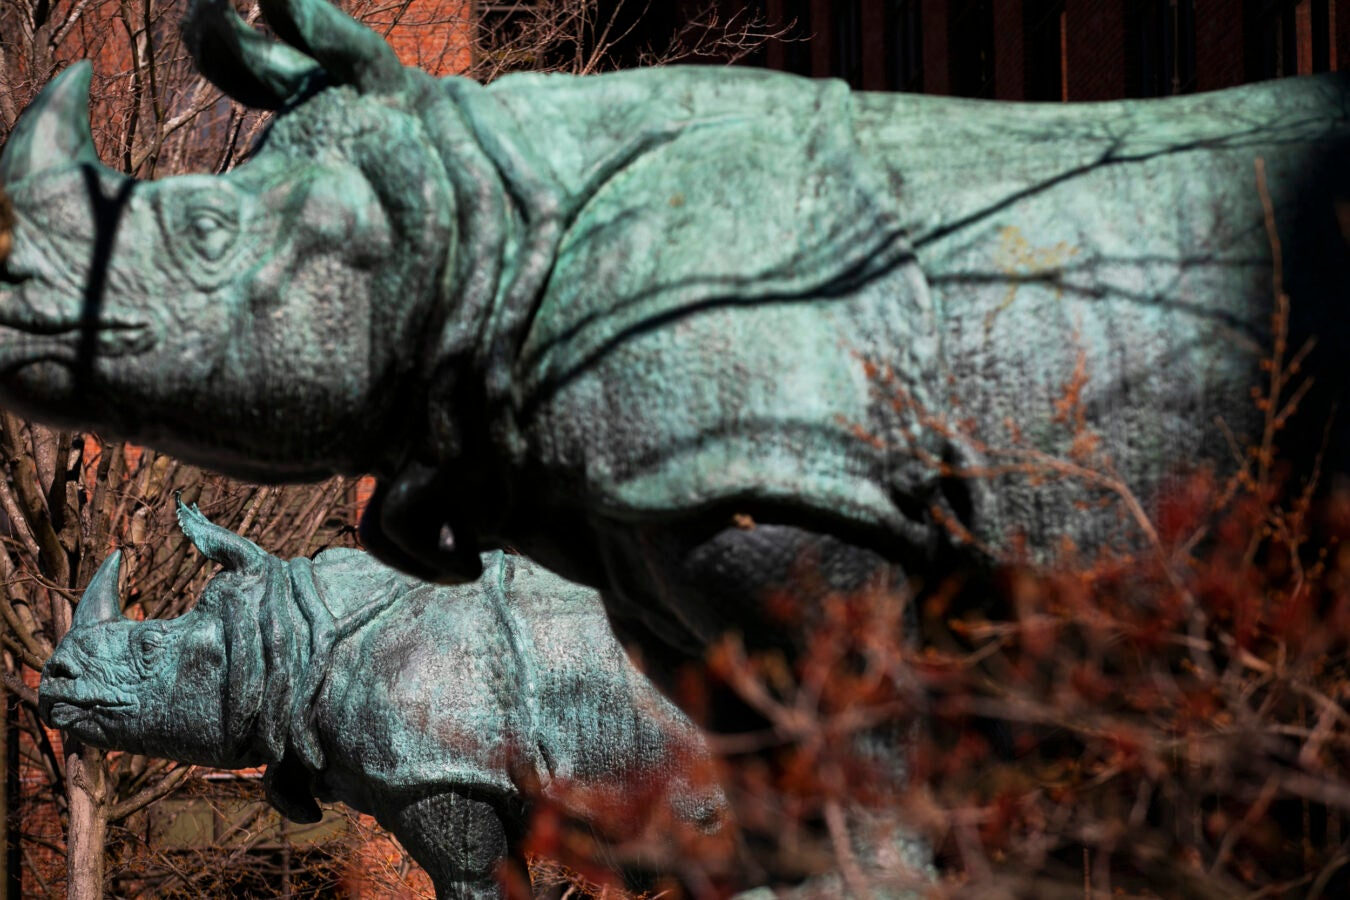 Two rhinos flank the main doors of the Biological Laboratory Building.